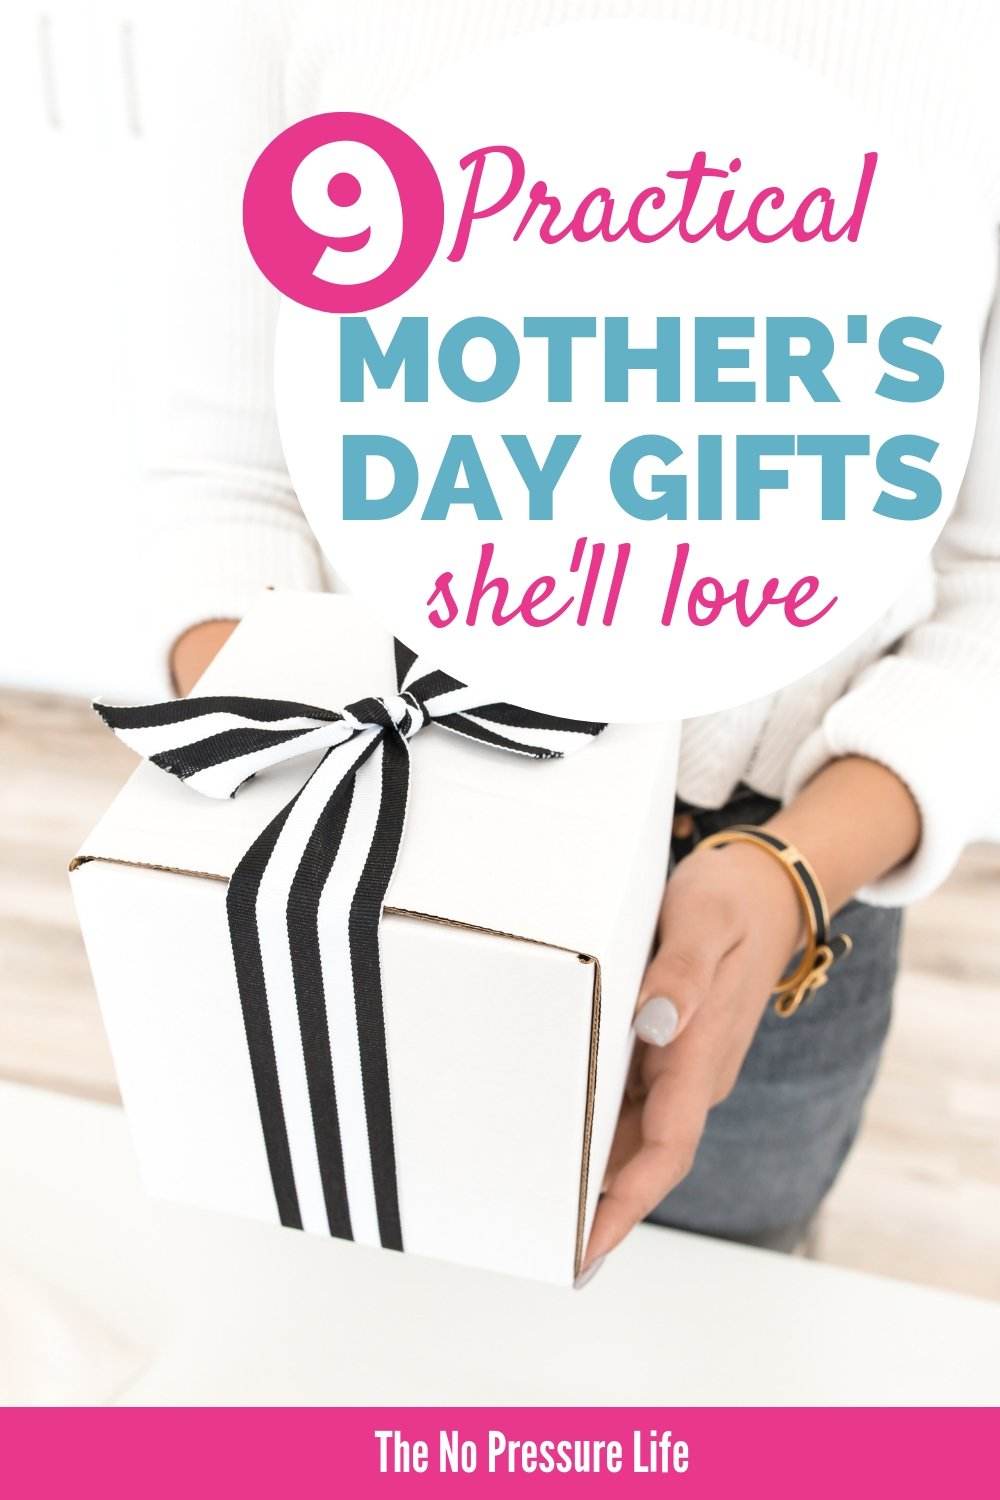 Practical gifts for mom - Mother's Day gift ideas